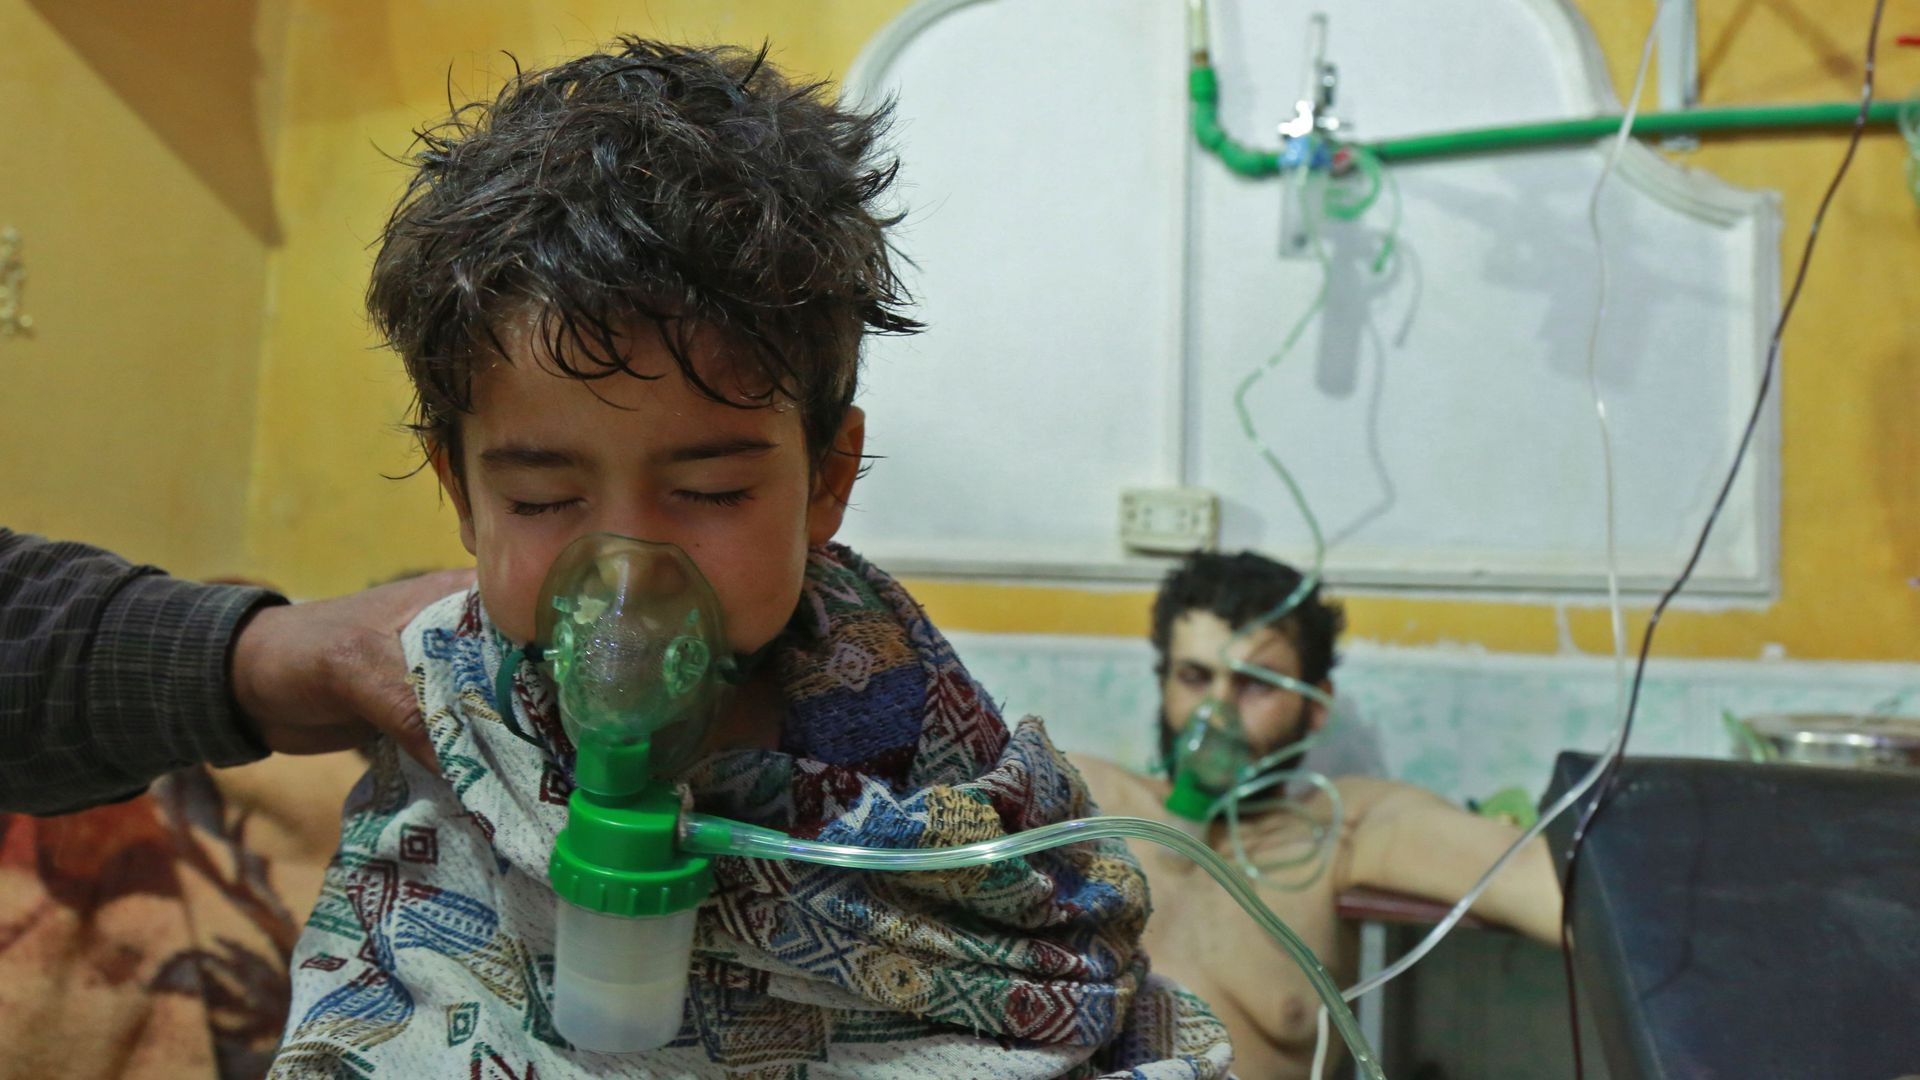 A child uses a green oxygen mask, while wrapped in a patterned blanket. A min sits behind him using a mask too. The wall is yellow.